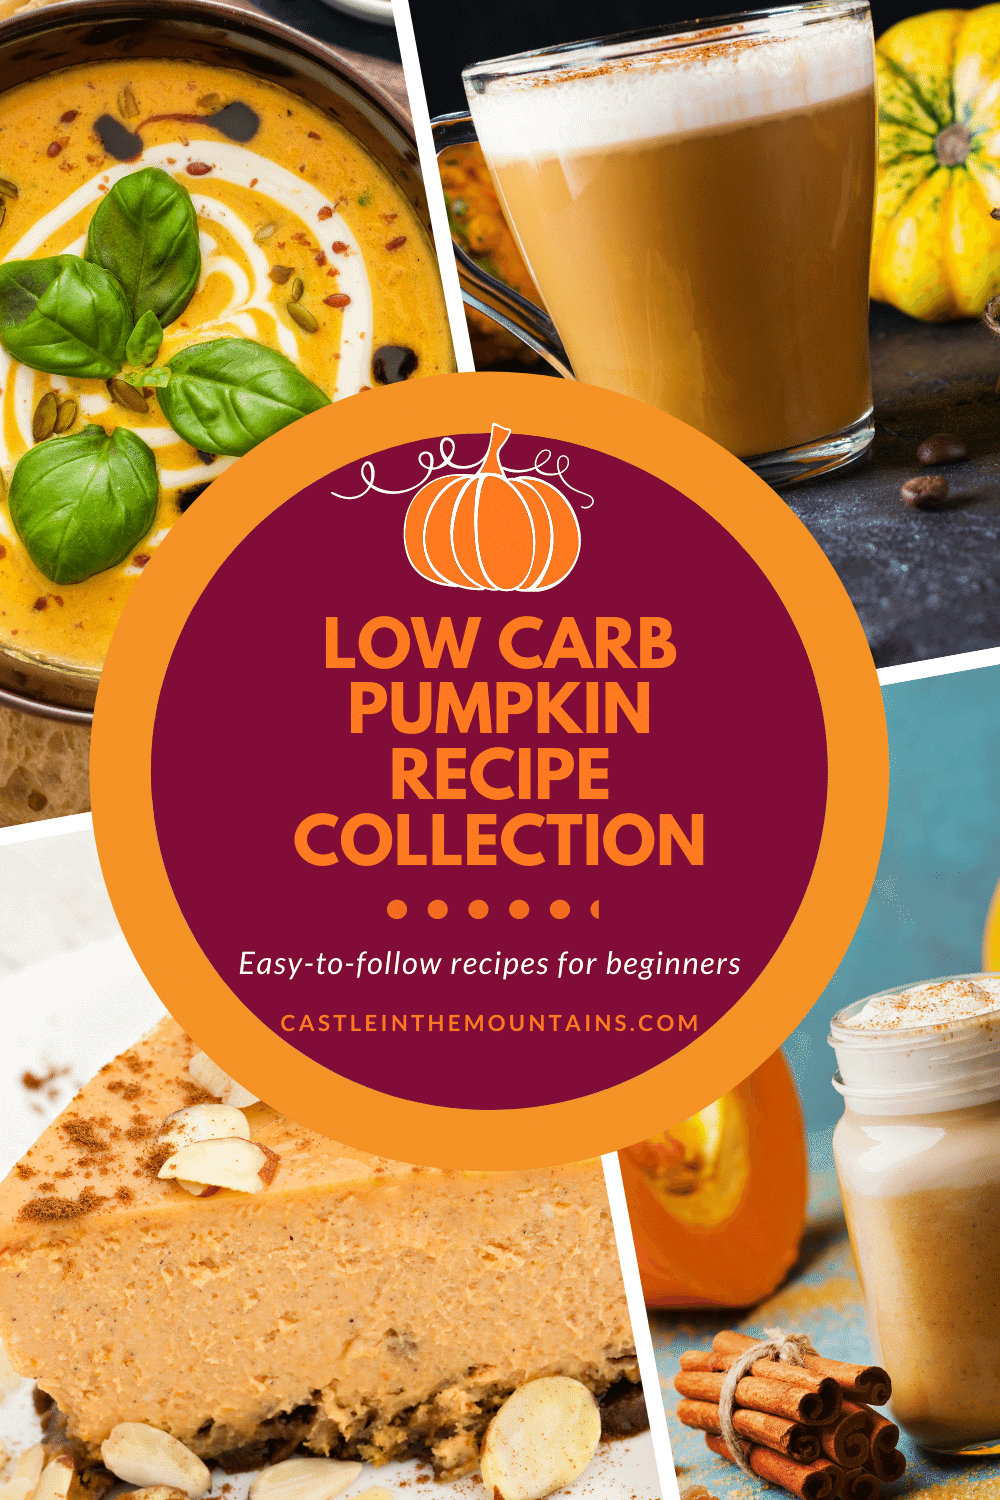 Low Carb Pumpkin Recipes - How to make the most of Pumpkin Season.